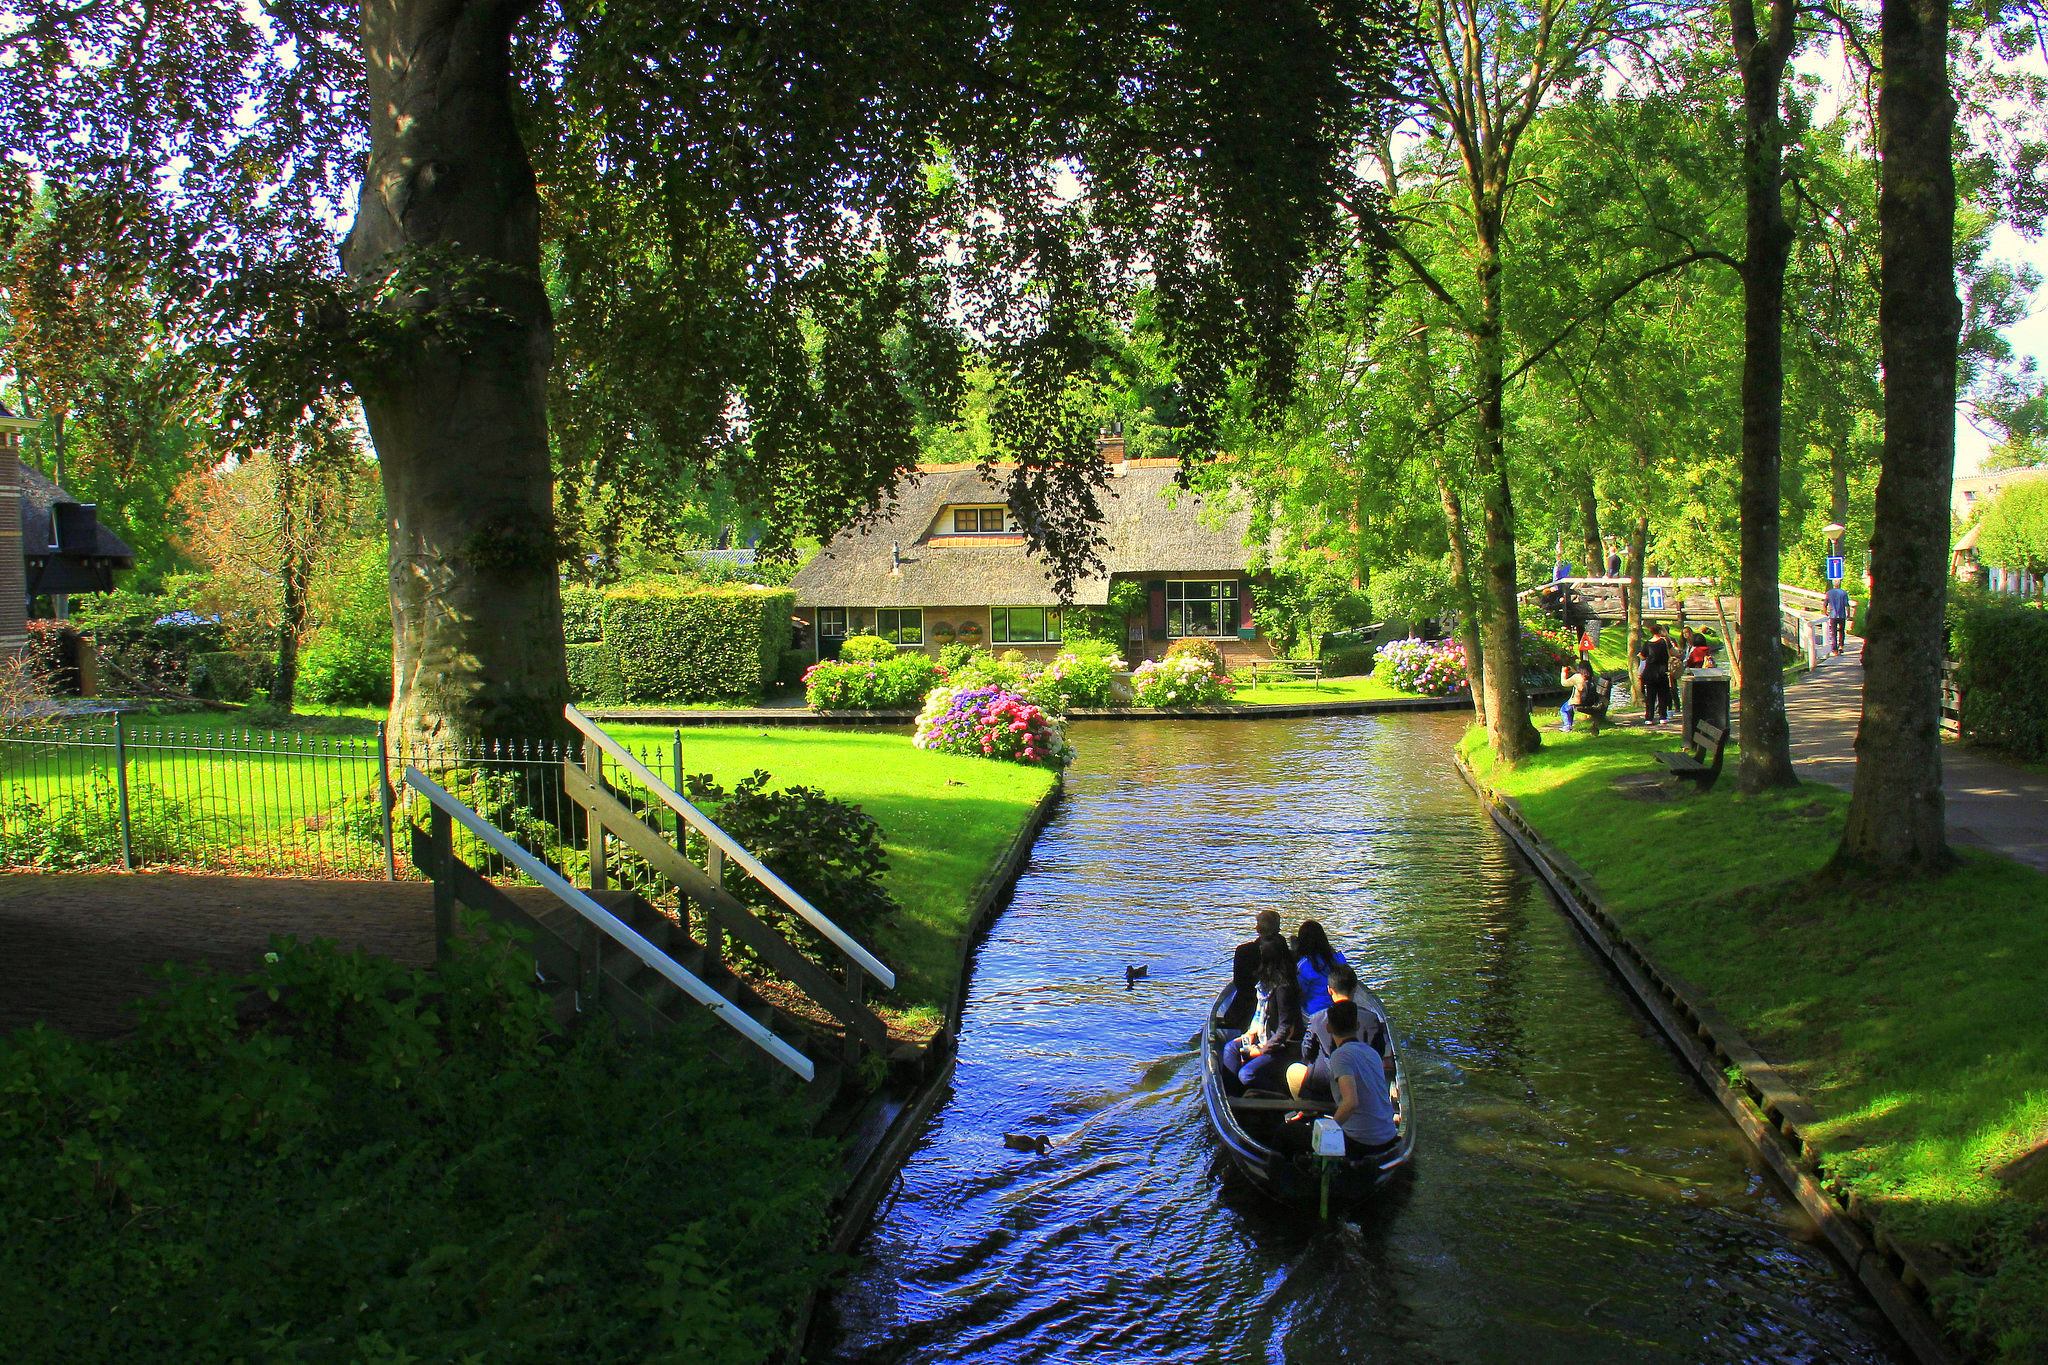 Giethoorn derived its name from 'Goat Horns'